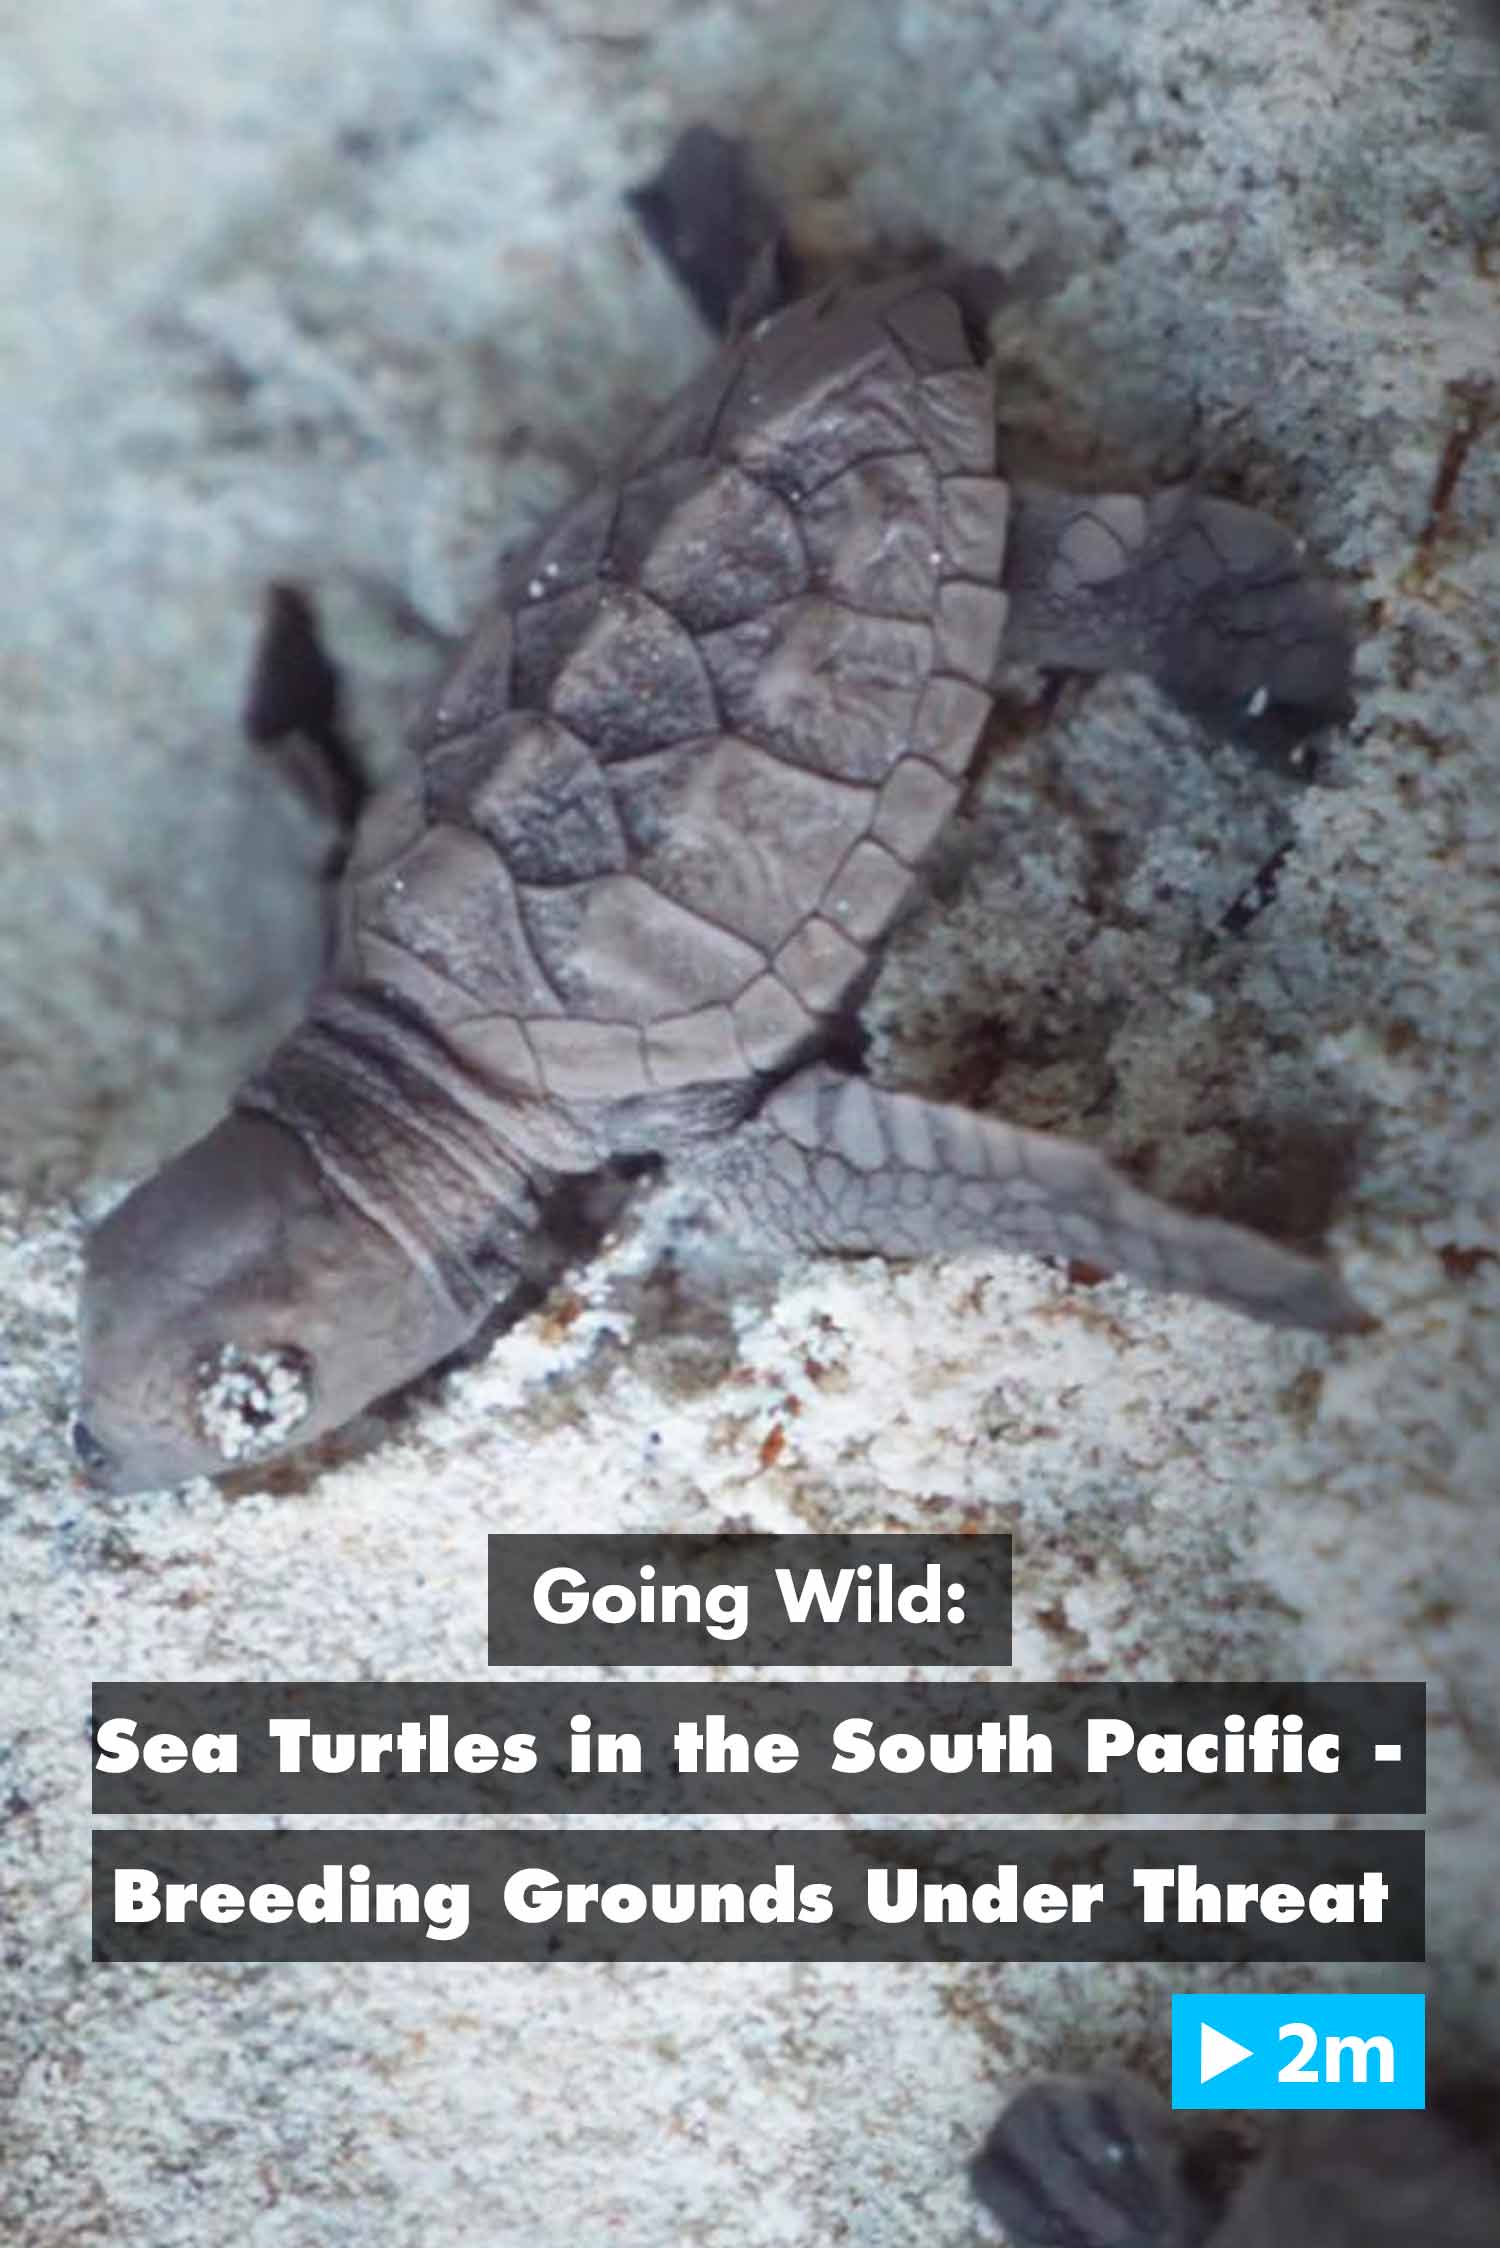 Going Wild: Sea Turtles in the South Pacific – Breeding Grounds Under Threat